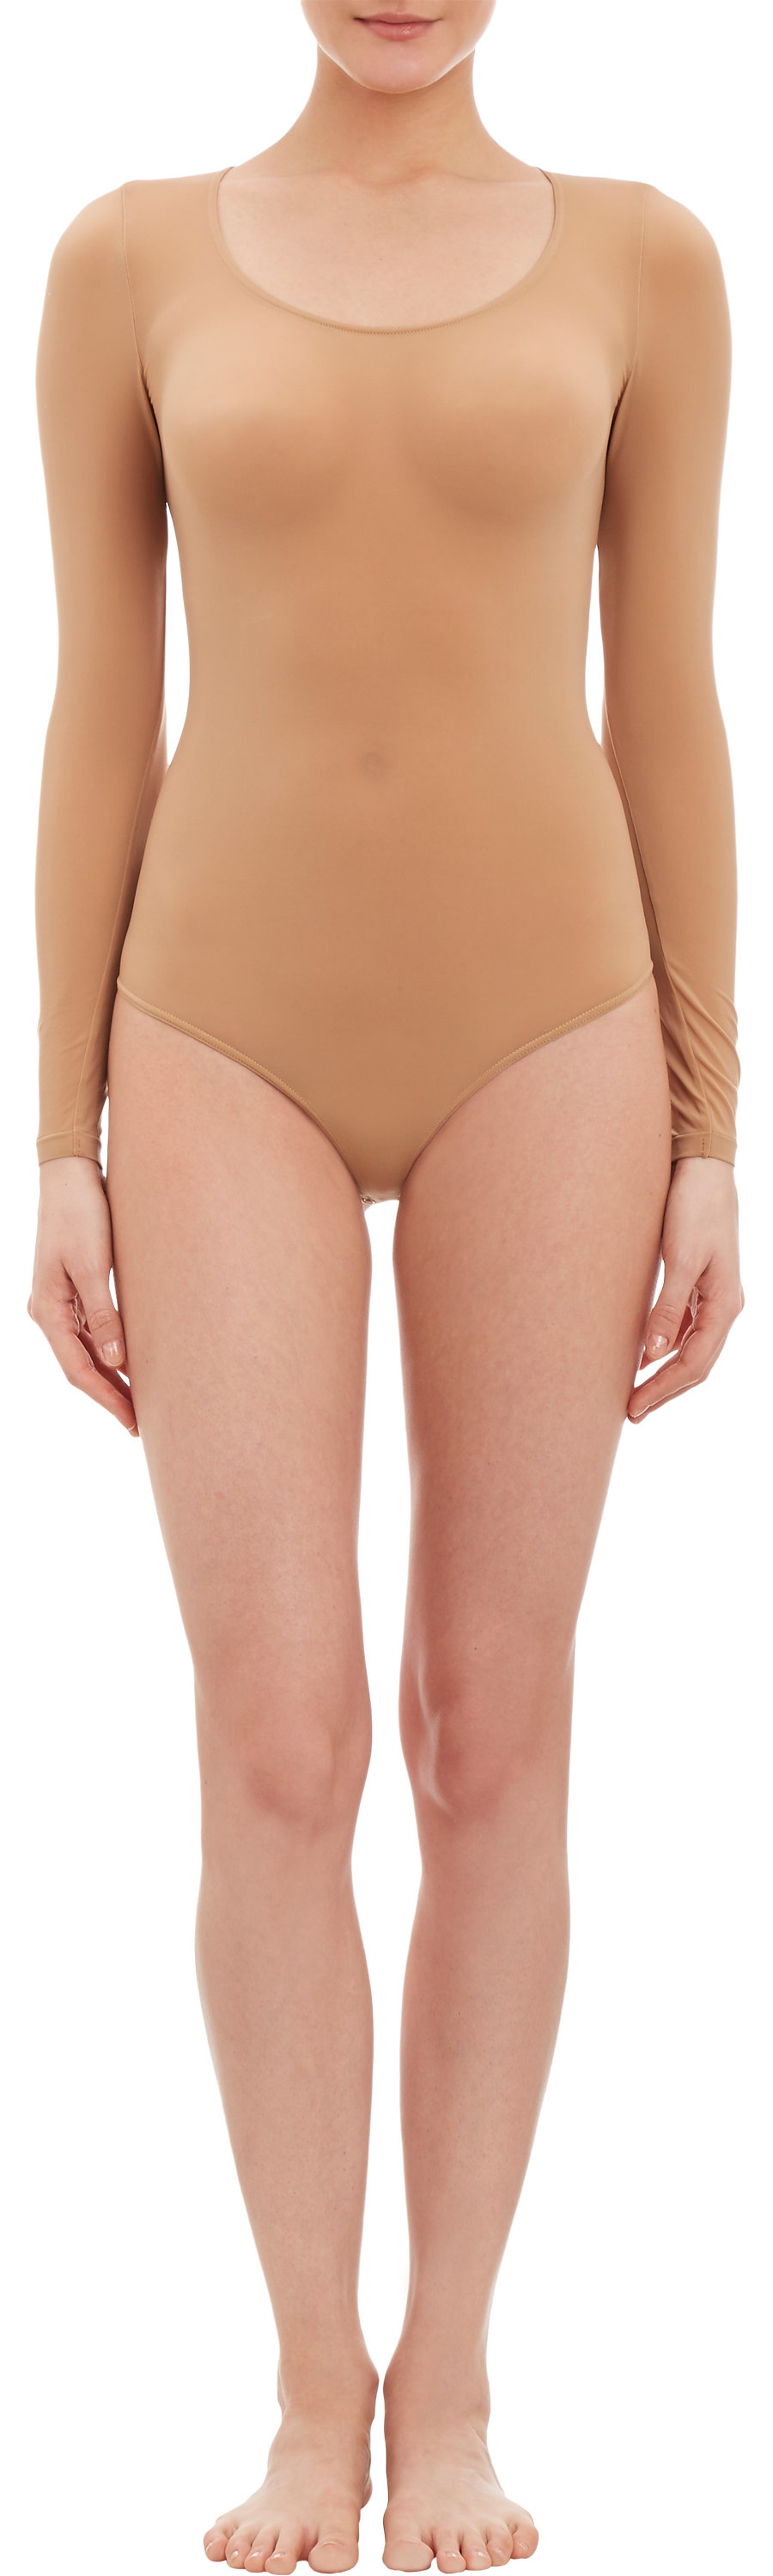 Wolford Buenos Aires Sheer String Bodysuit in Natural - Lyst ac191429499